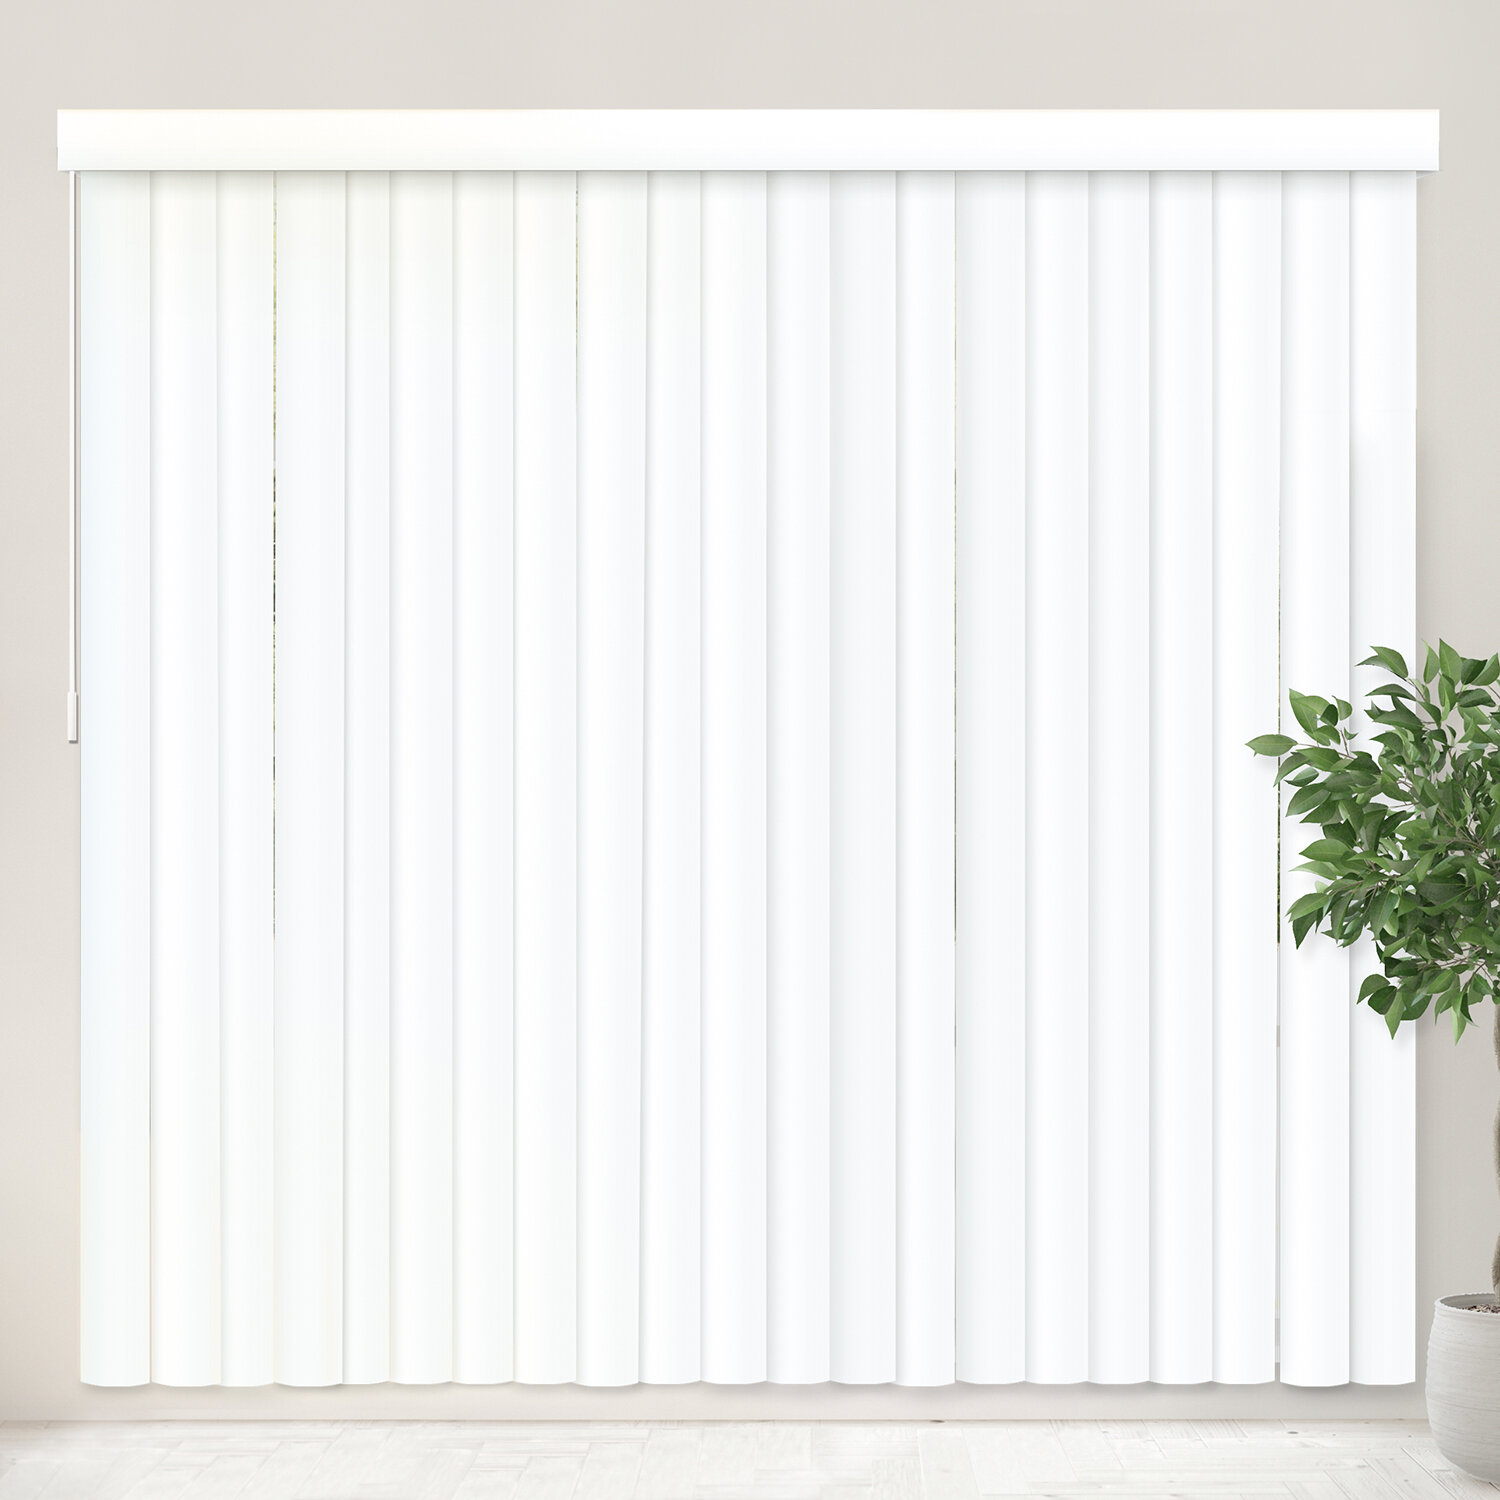 Vertical Blinds Free Shipping Over 35 Wayfair